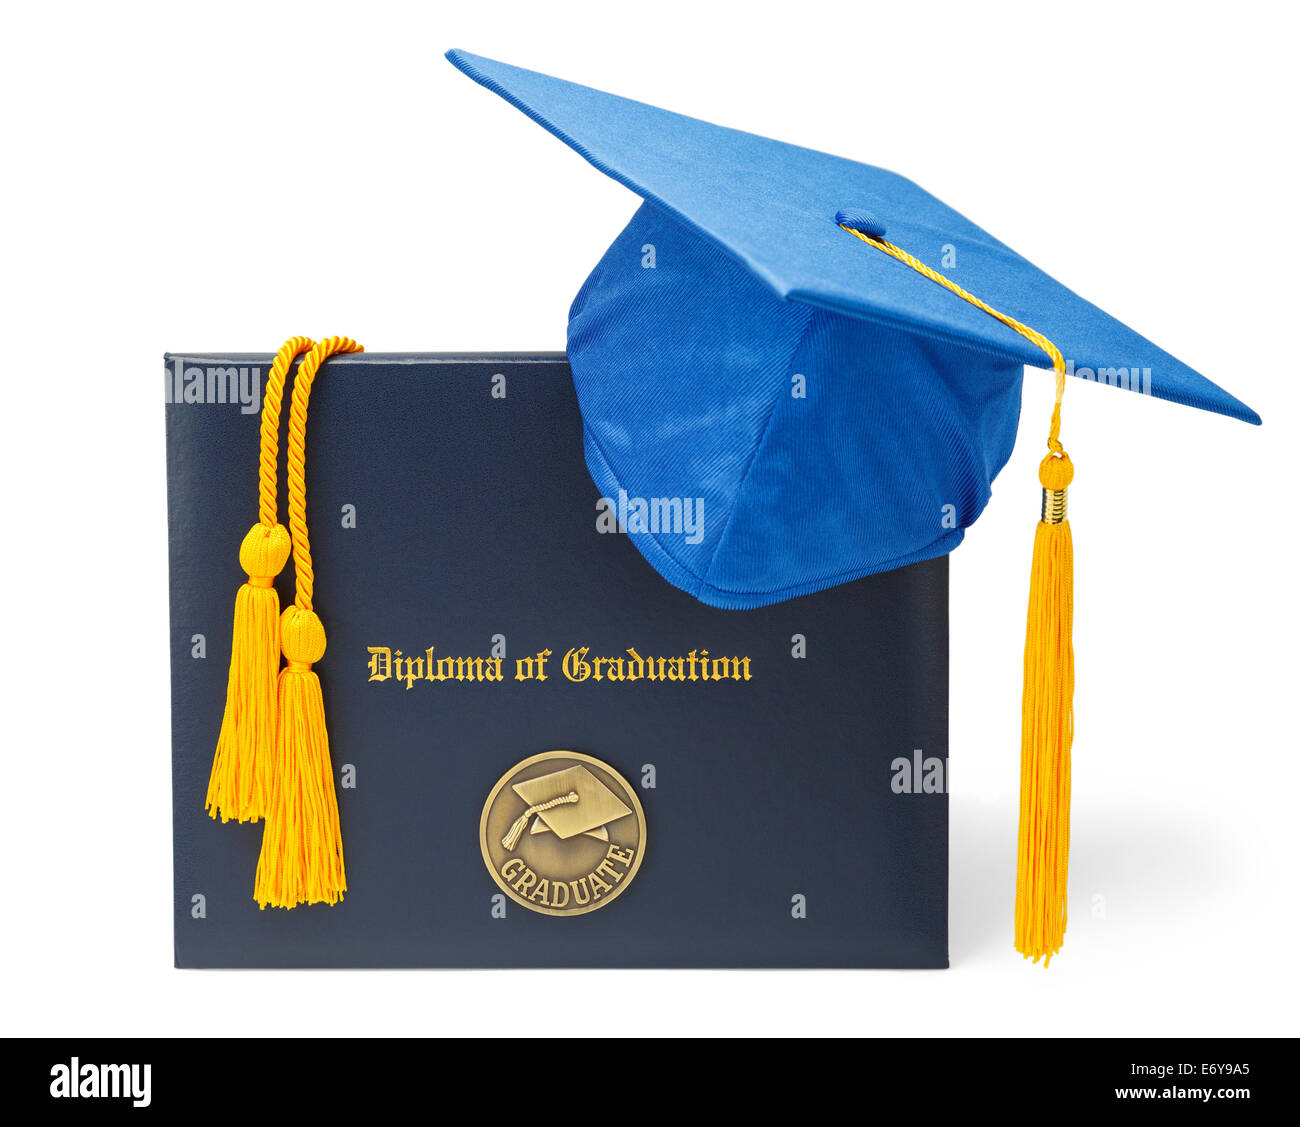 Diploma of Graduation with Blue Mortar Board and Honor Cords Isolated on White Background. - Stock Image